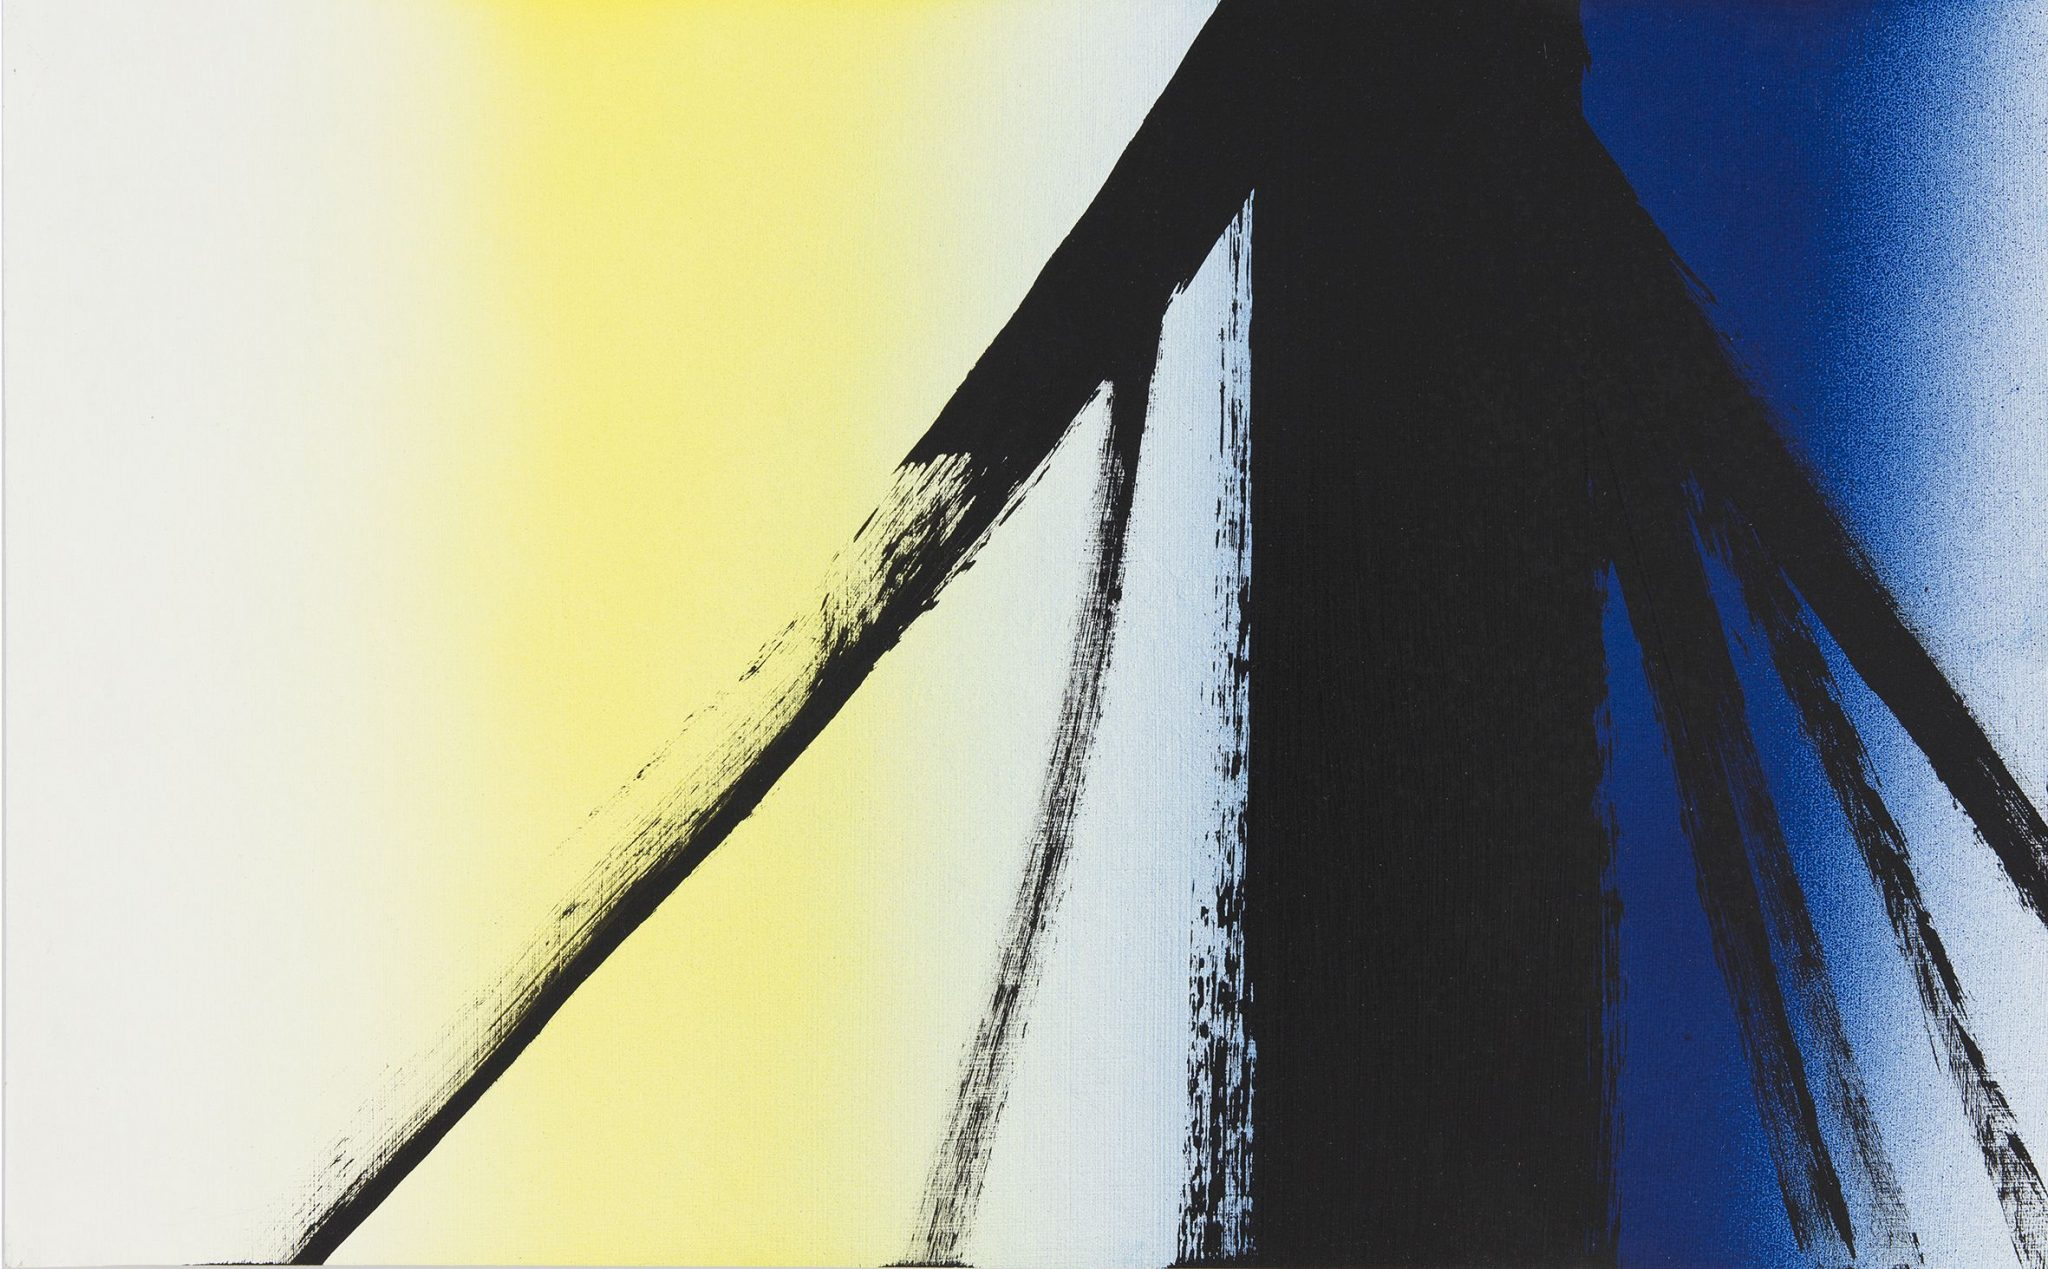 Hans Hartung, T1977-E2, Acrilico su masonite, 1977